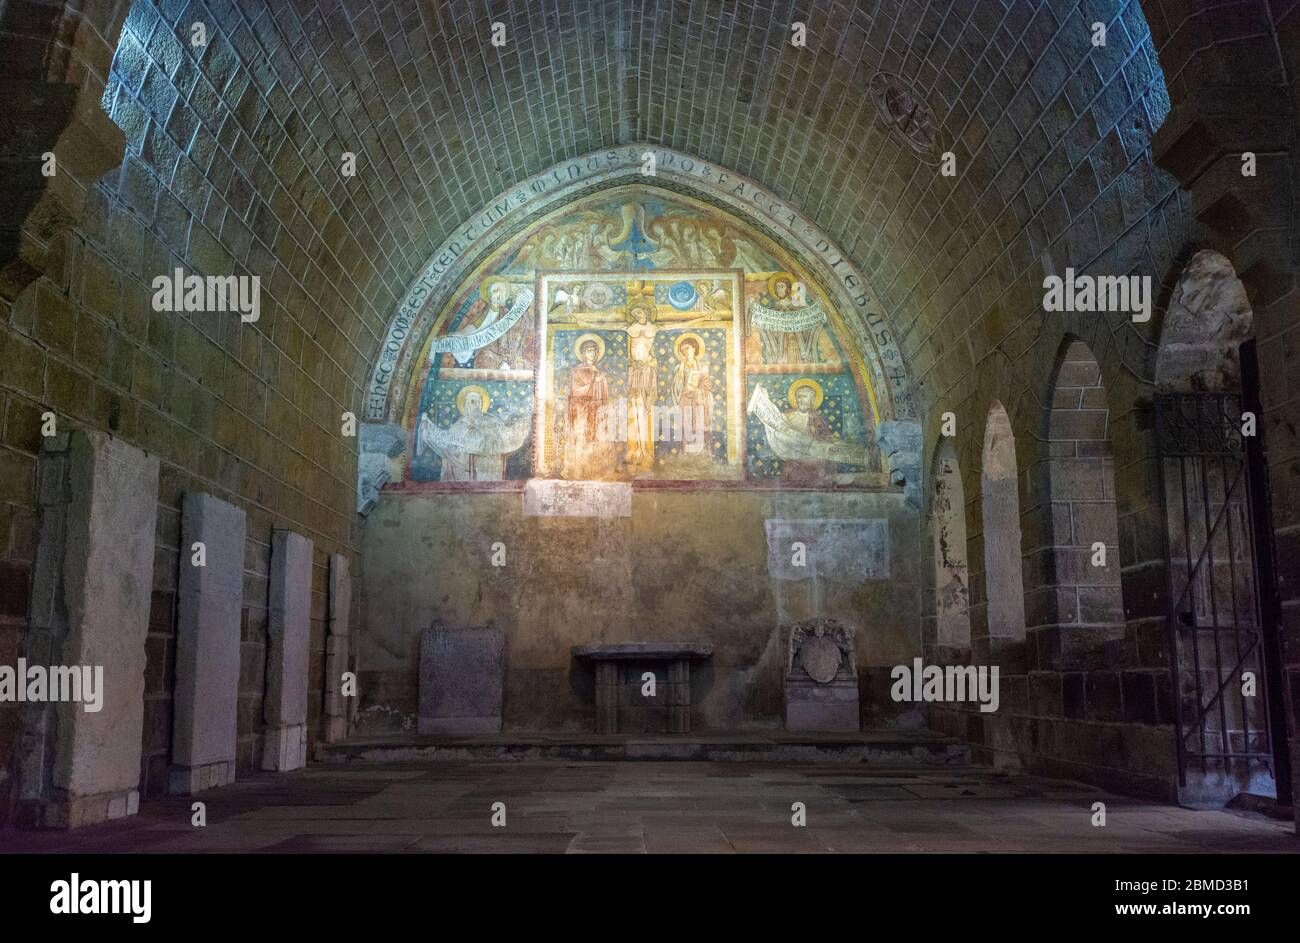 France, Le Puy-en-Velay, Notre-Dame Cathedral, a UNESCO World Heritage Site, The Cloisters, crucifixion fresco, circa early 13C Stock Photo